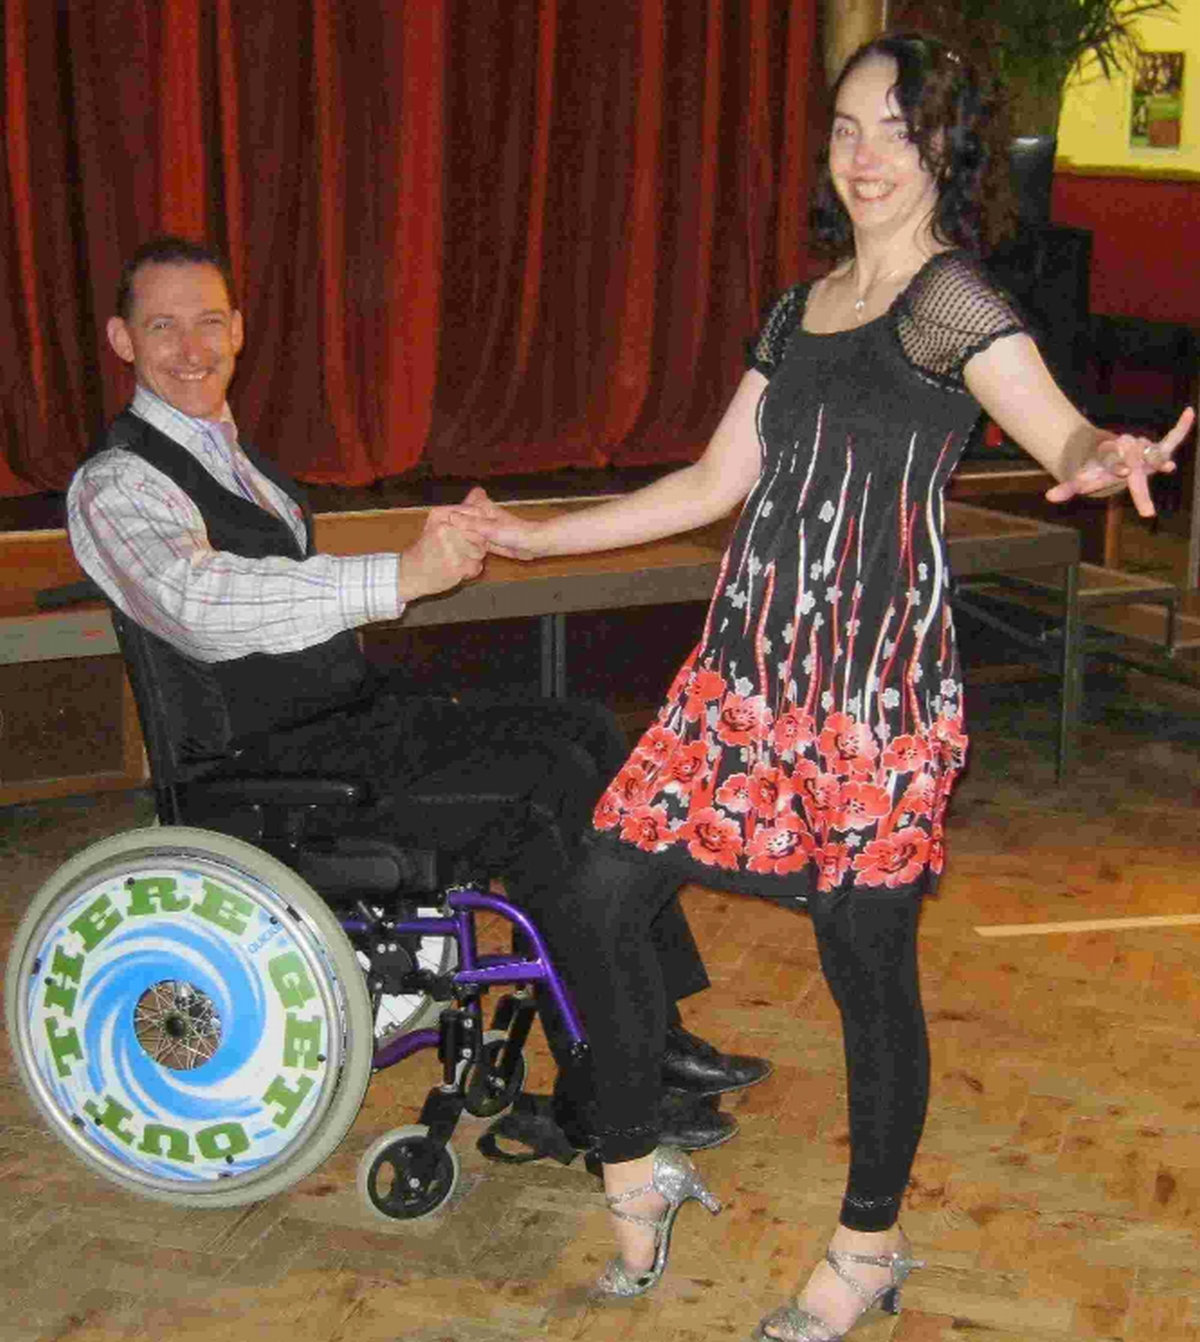 Glenn Bayliss and Angie Golding of Wheel Keep Dancing